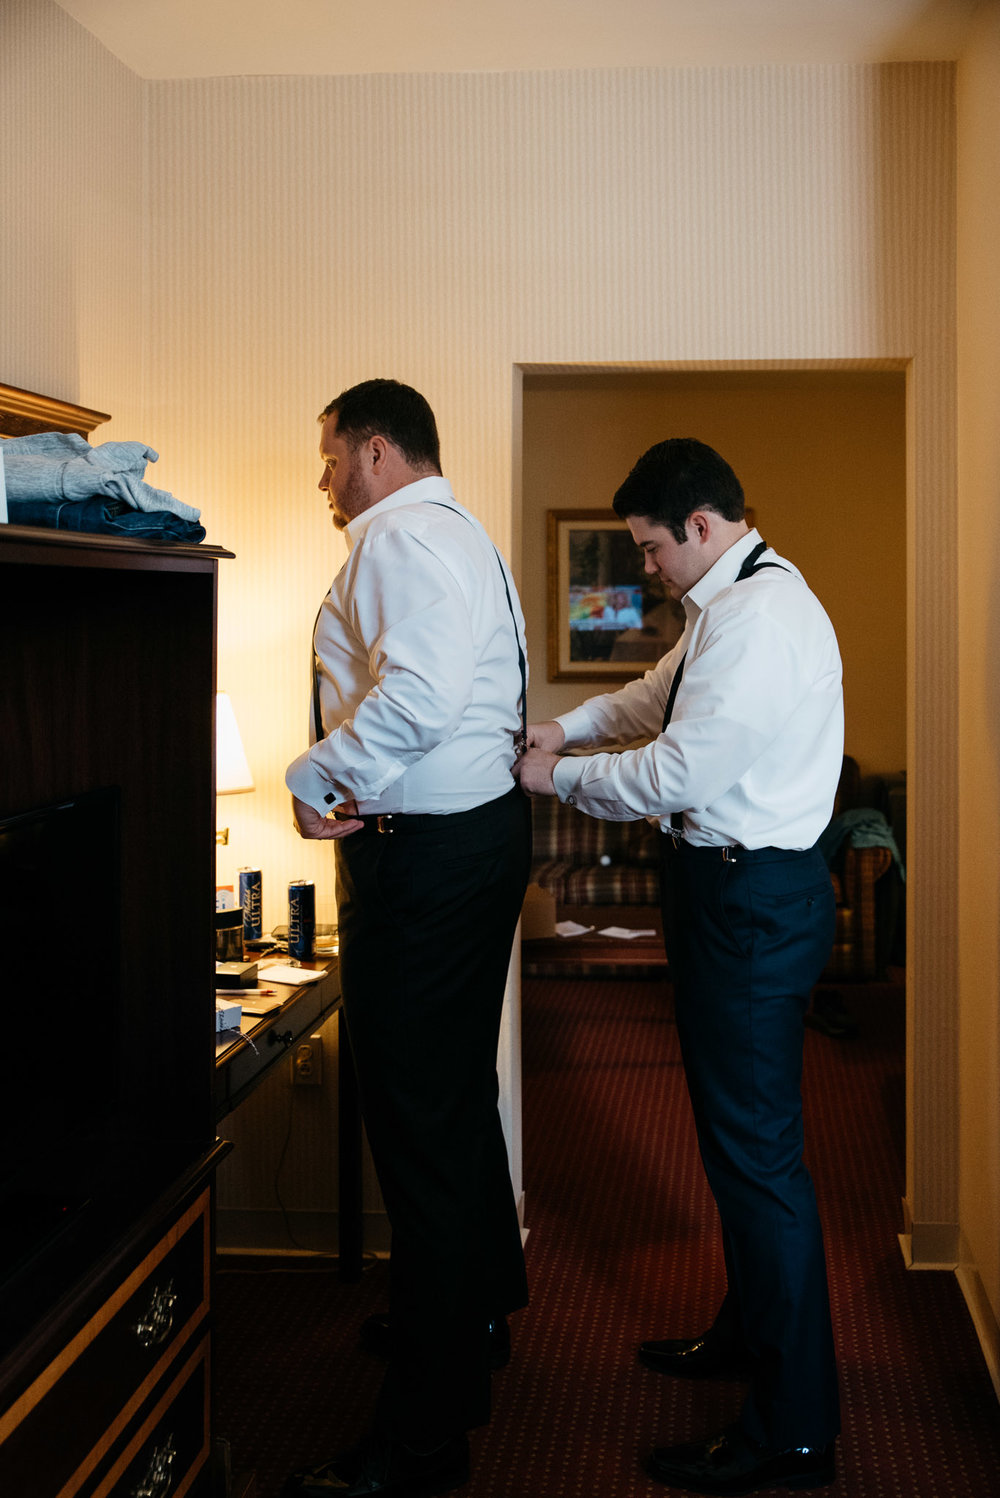 Groom+getting+ready Mariah Fisher wedding photographer.jpg